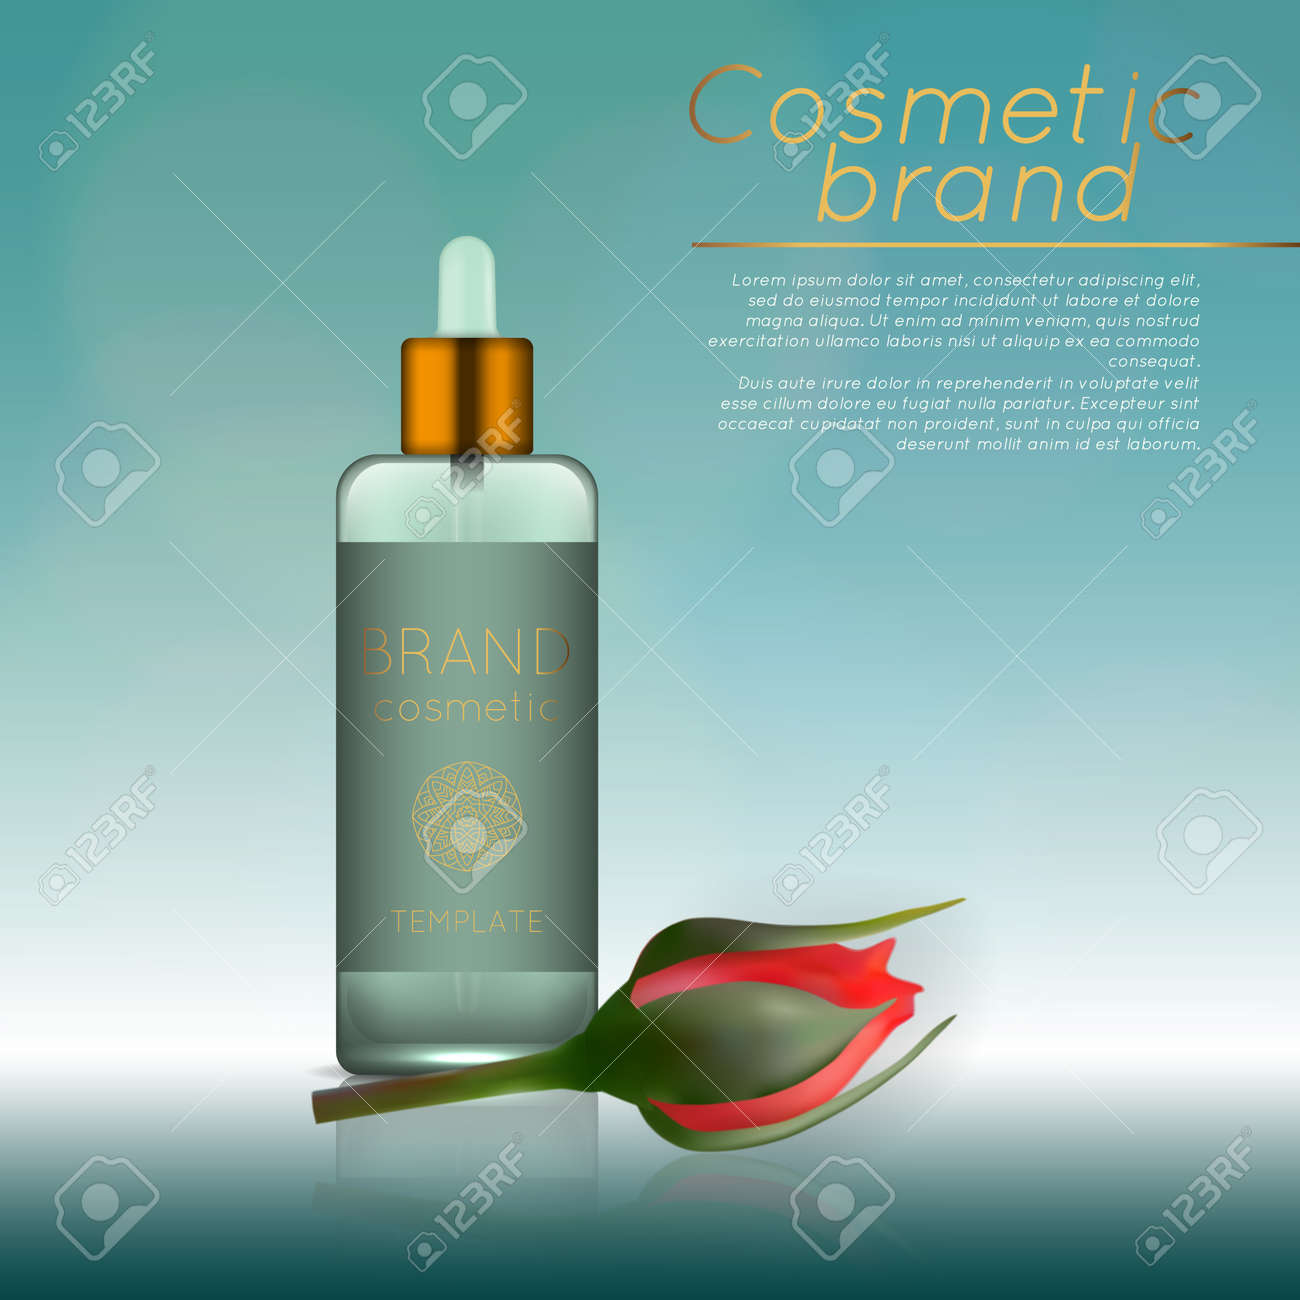 Beauty Products Advertisement Template Royalty Free Cliparts - Product ad template